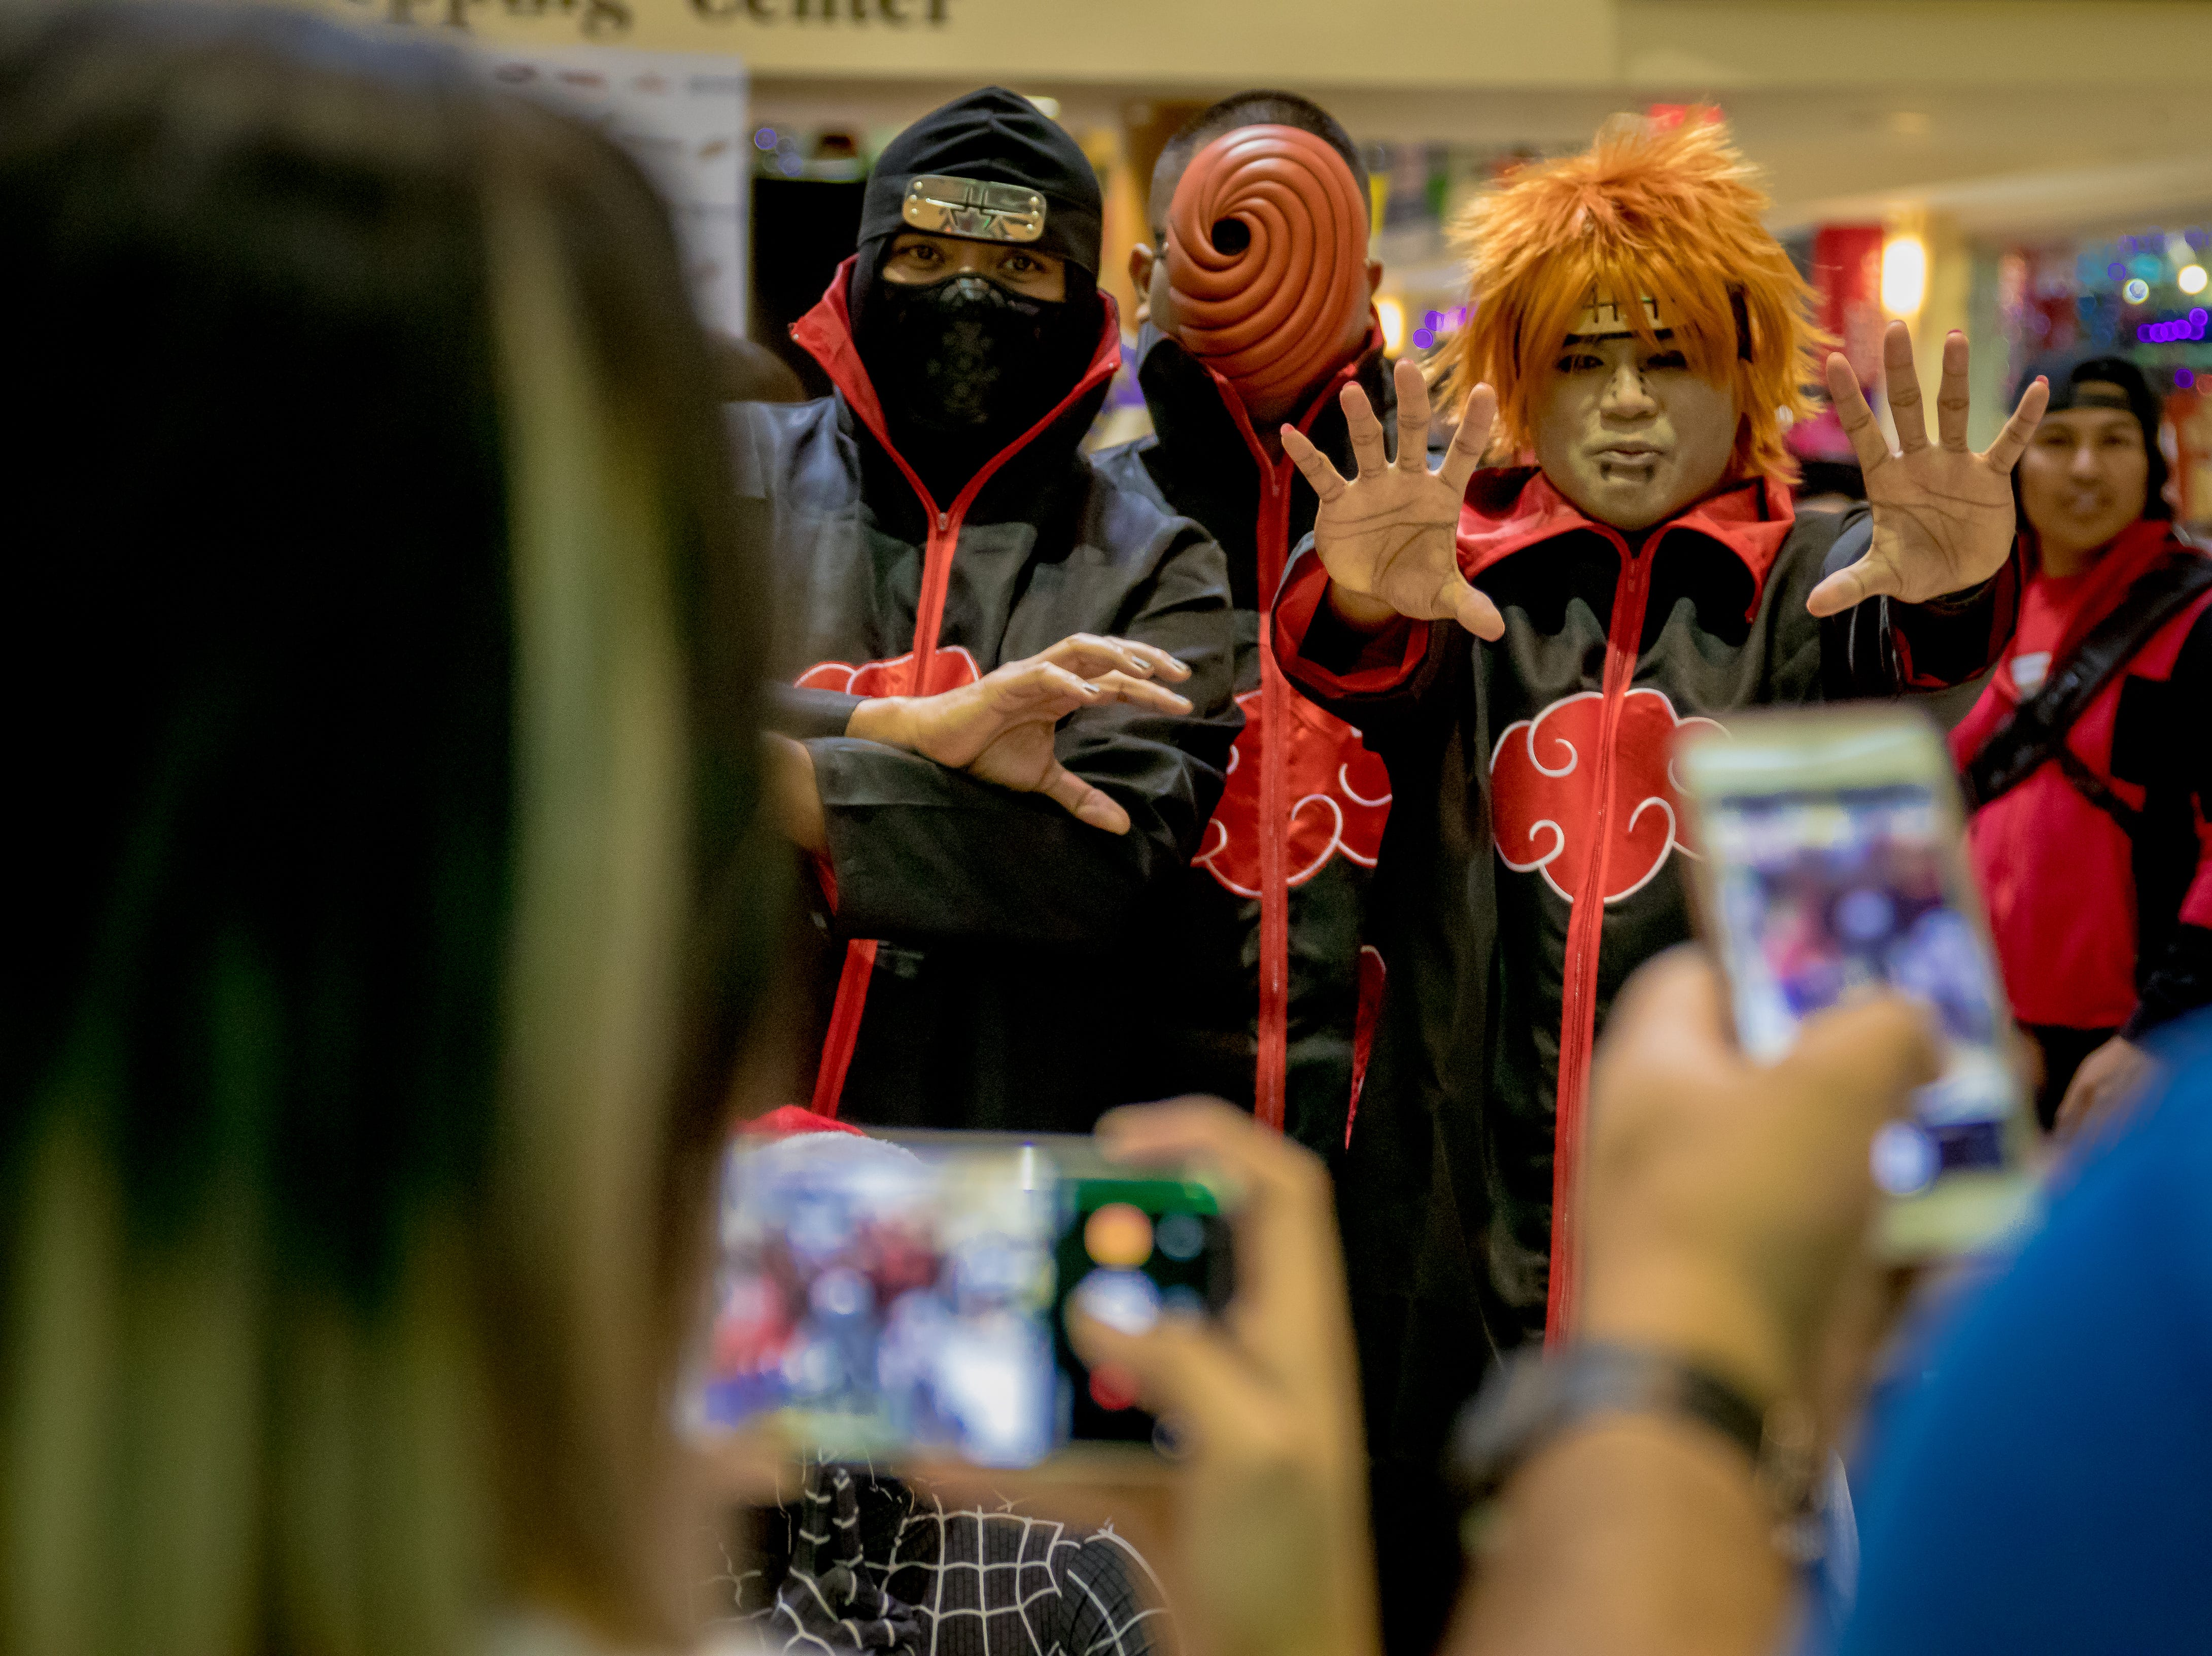 Attendees take photos of cosplayers during the Herocon event held at Agana Shopping Center on Dec. 9.